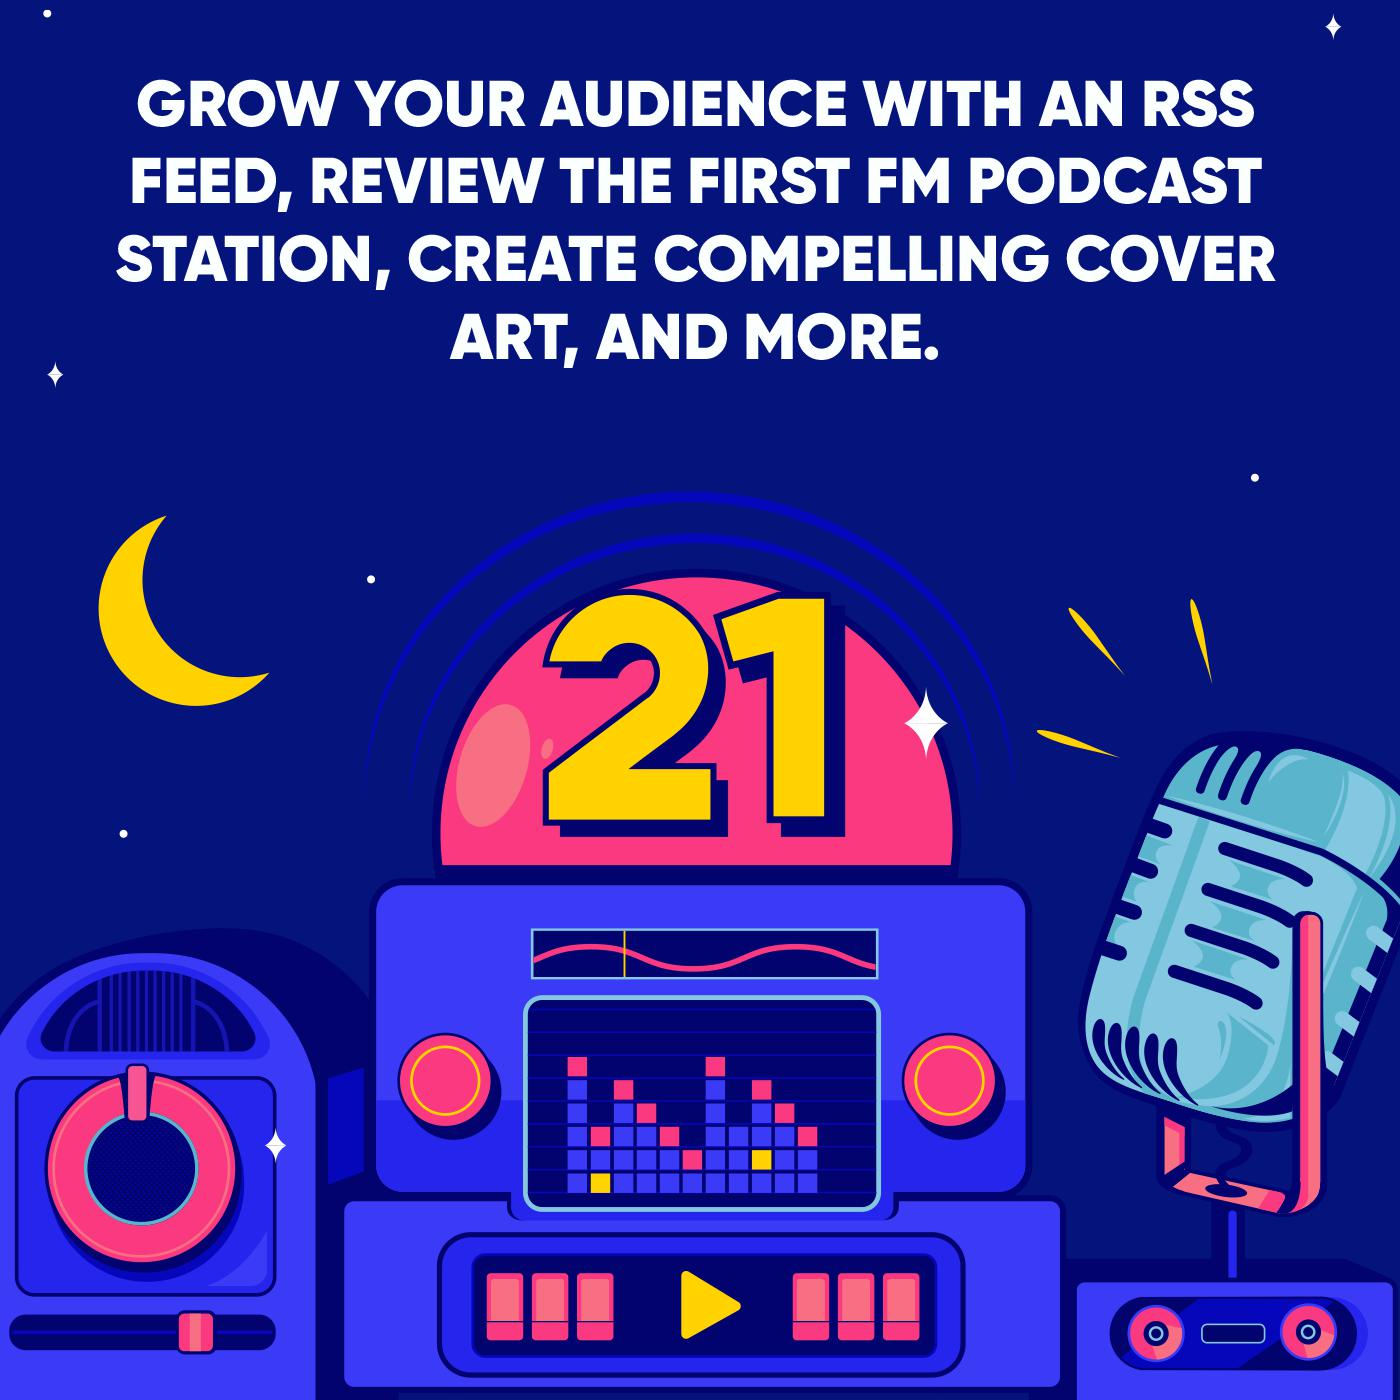 Grow your Audience with an RSS Feed, Review the First FM Podcast Station, Create Compelling Cover Art, and More.